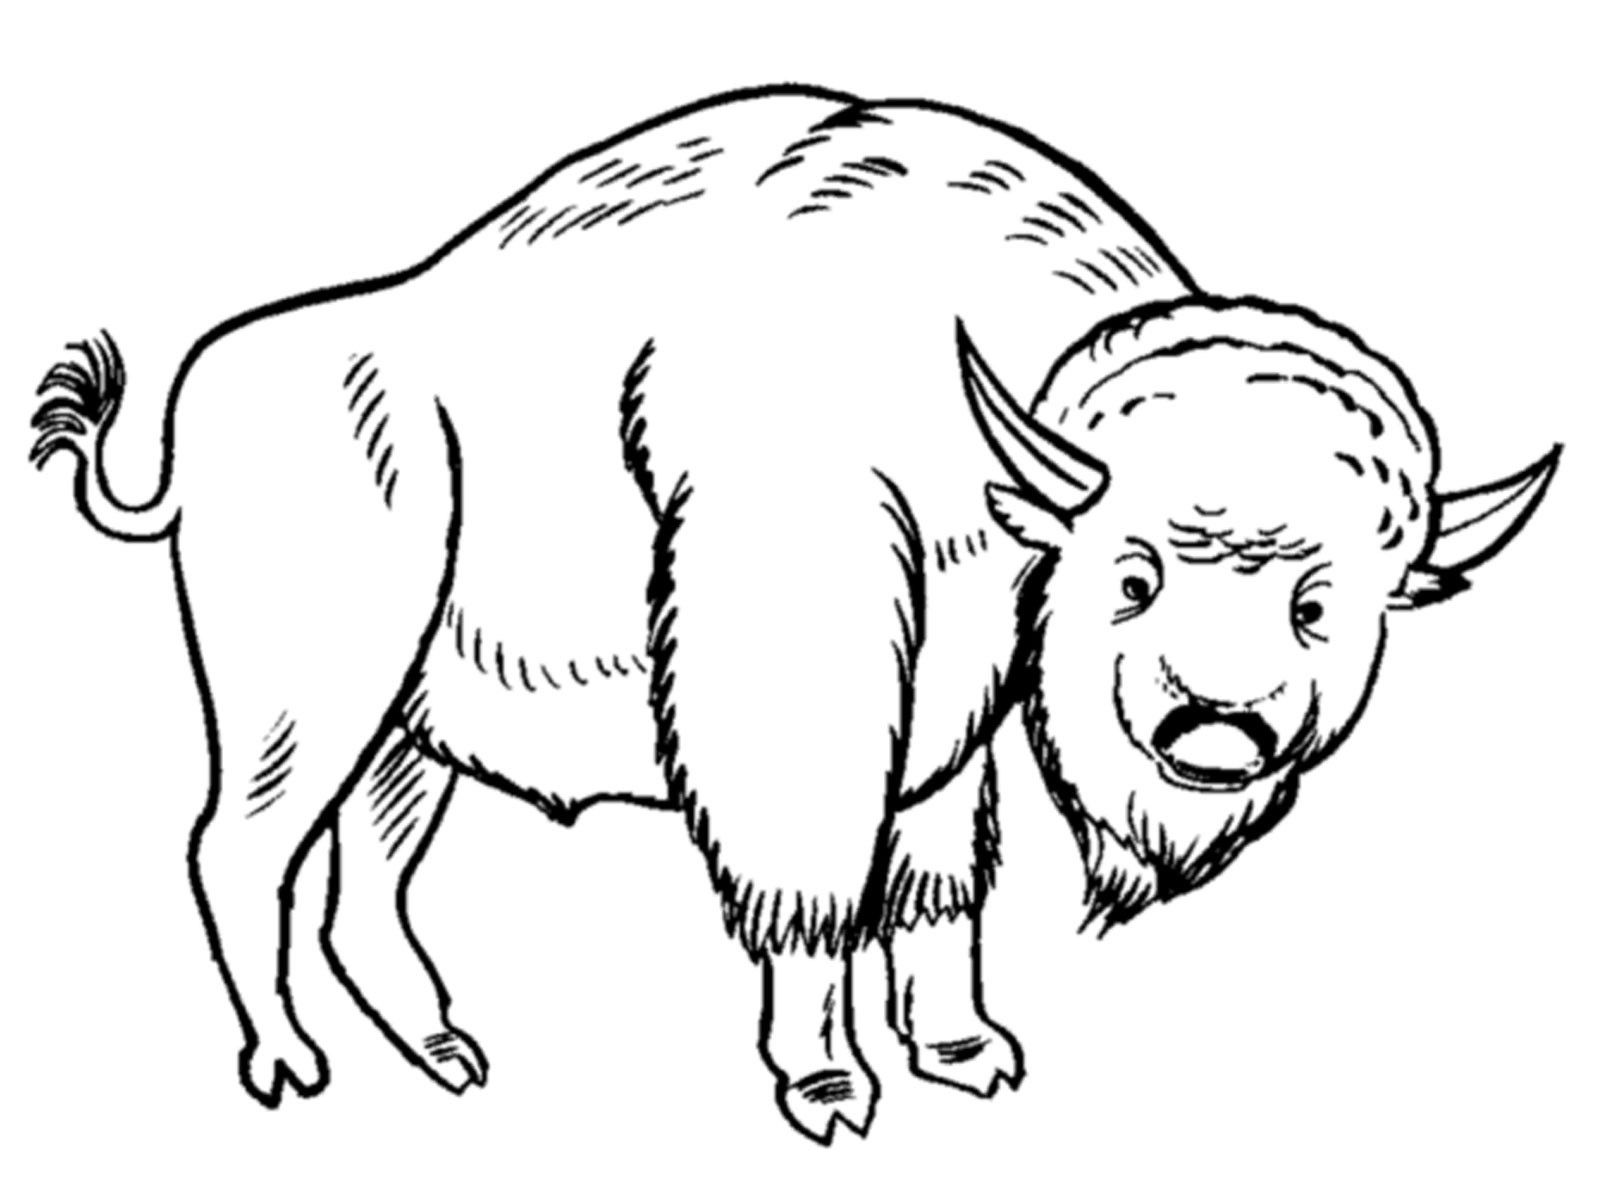 Grassland animals coloring pages from the thousands of images on the net with regards to grassland animals coloring pages we choices the top libraries